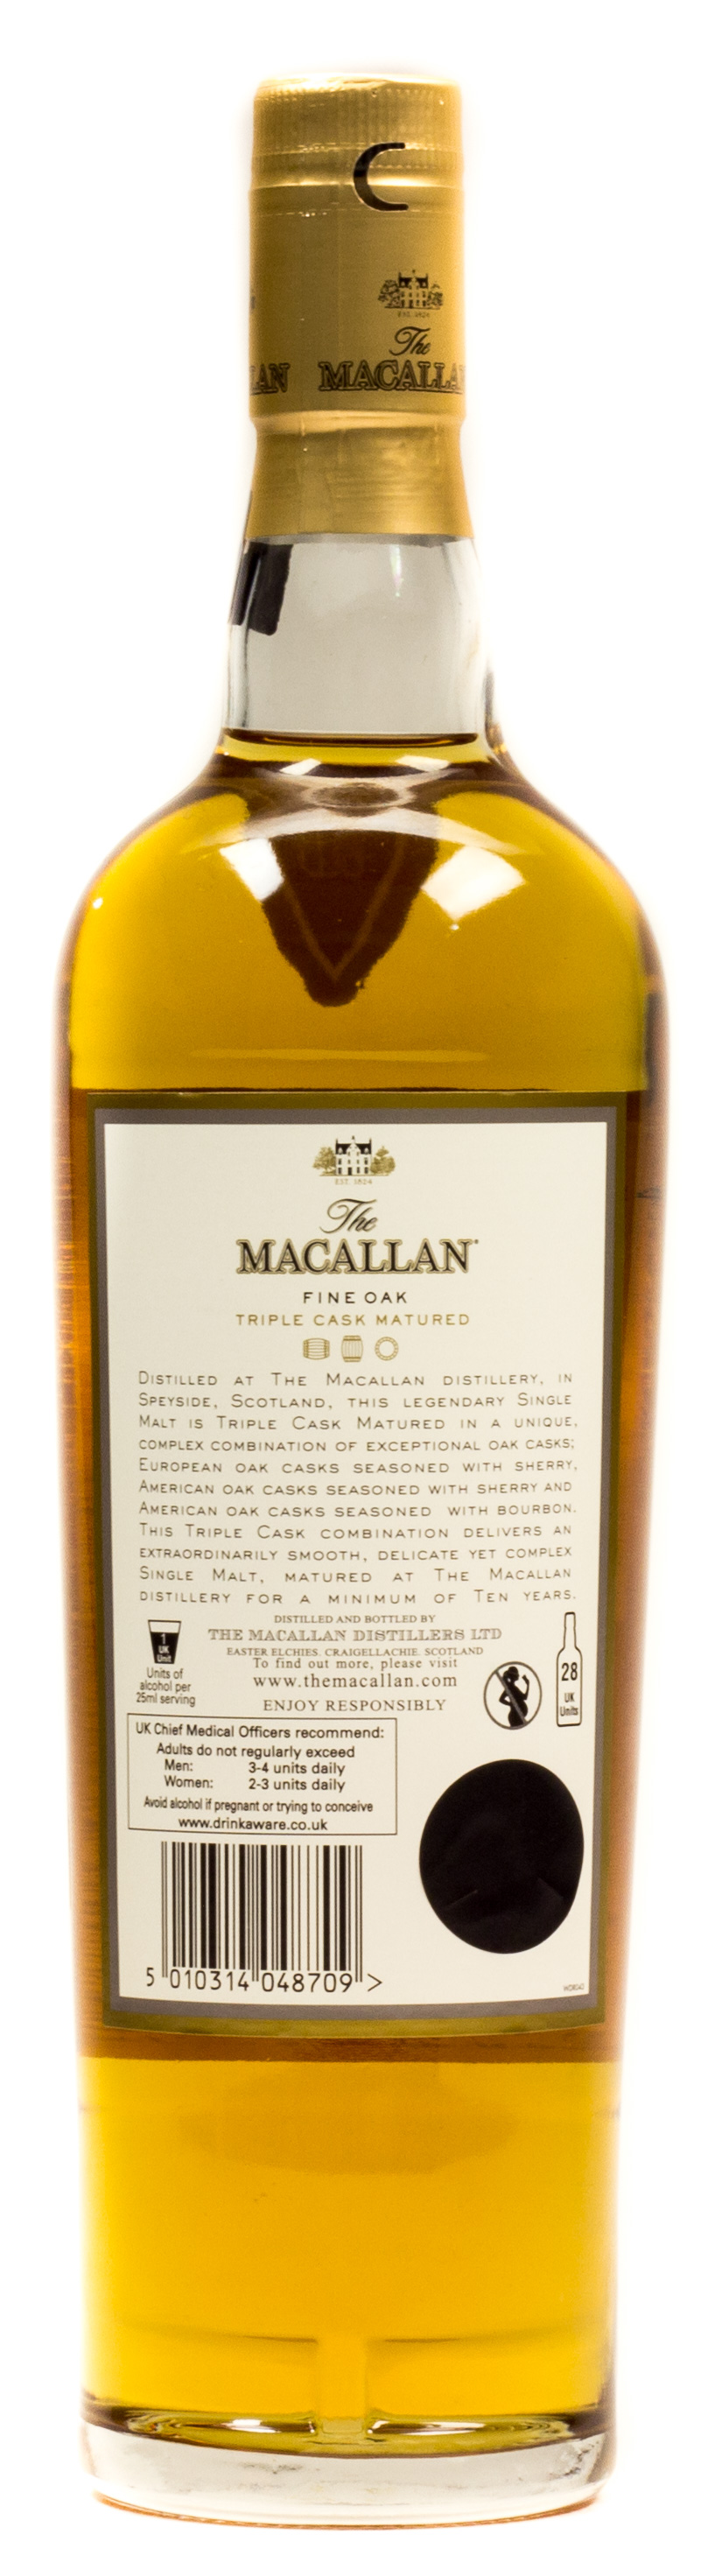 The Macallan Fine OAK Highland Single Malt Scotch Whisky 10 years 0,7 l